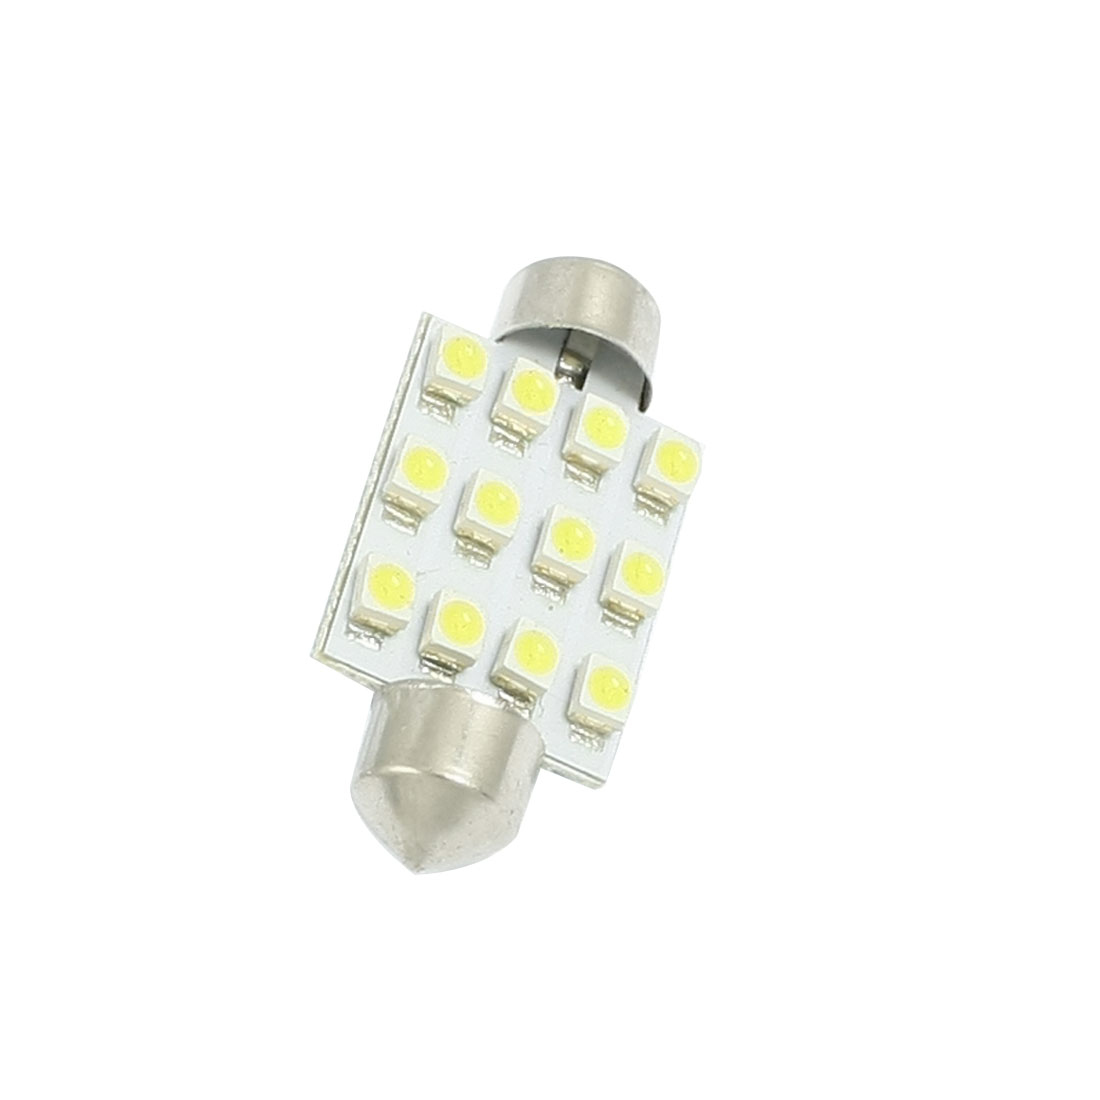 Car Interior DC 12V White 1210 12 SMD Dome Festoon LED Light Lamp Bulb 39mm